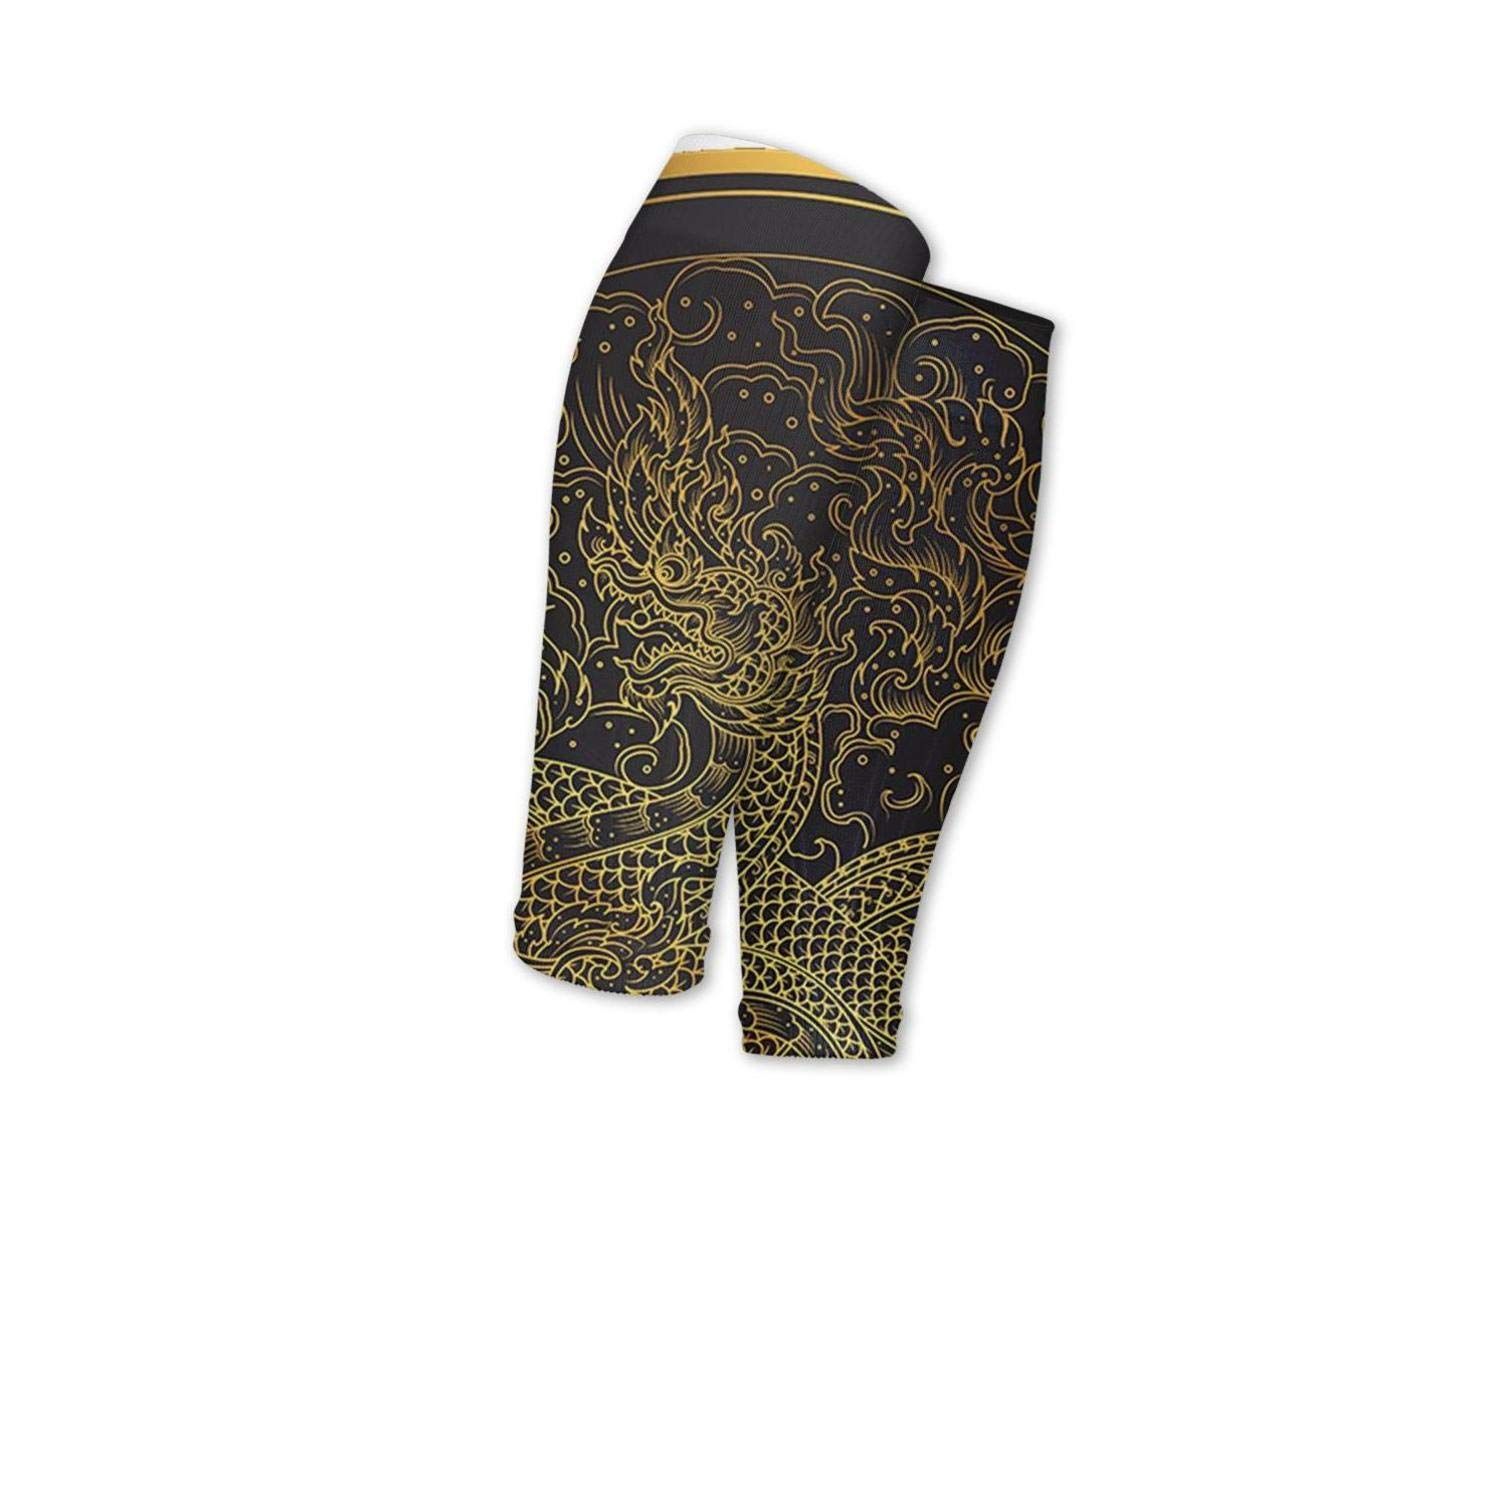 Smilelolly Golden Dragon Bohemian Psychedelic Animal Calf Compression Sleeves Helps Pain Relief Leg Sleeves for Men Women